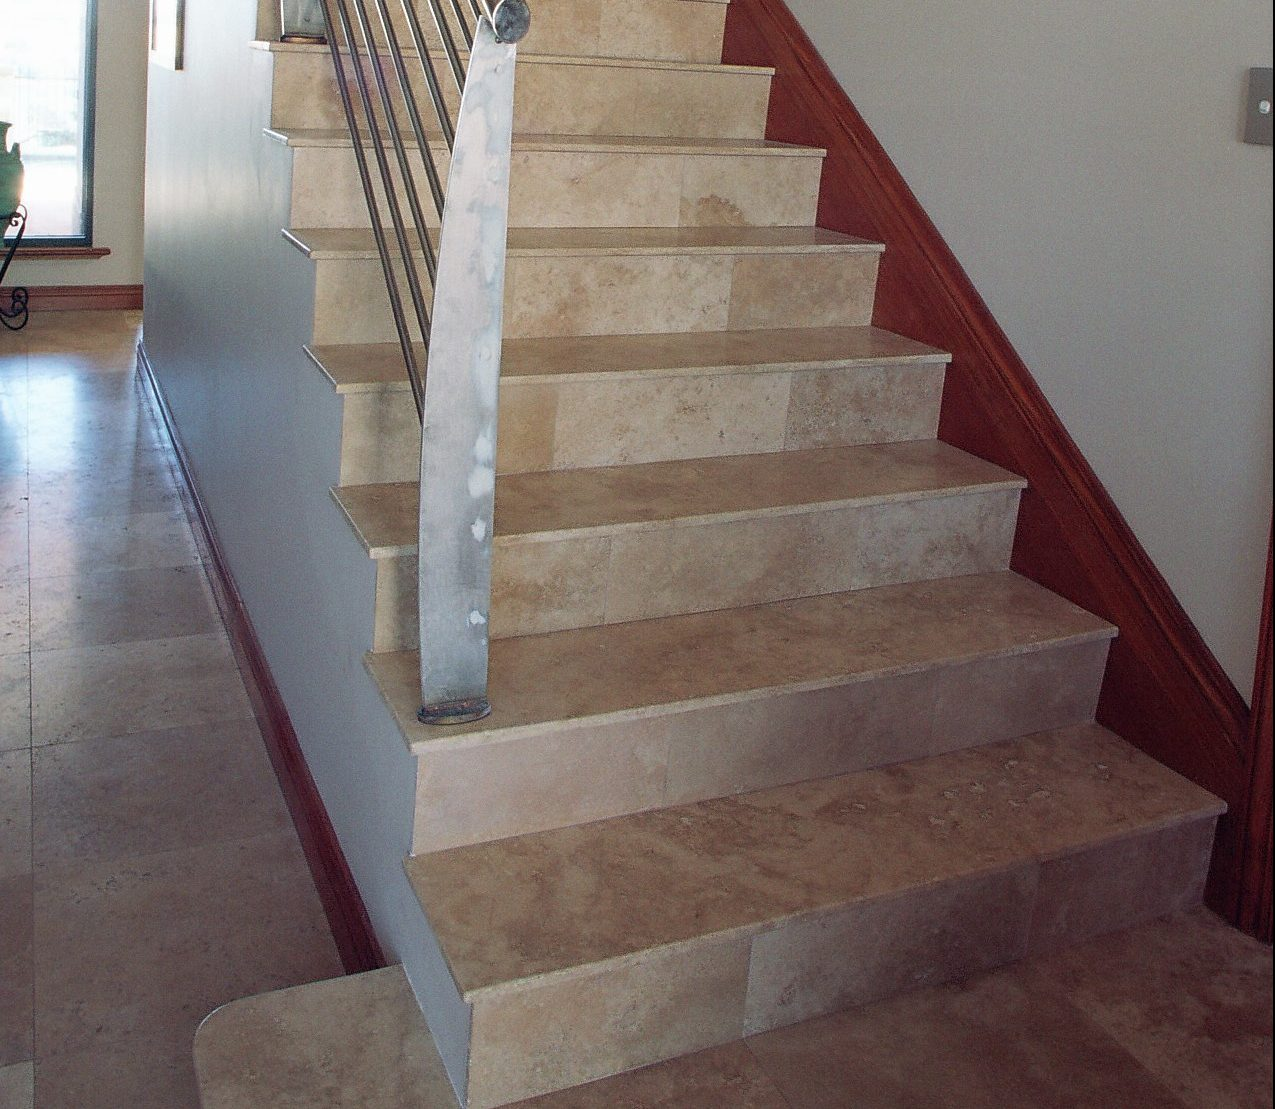 Steps and risers tiled with marble tiles.